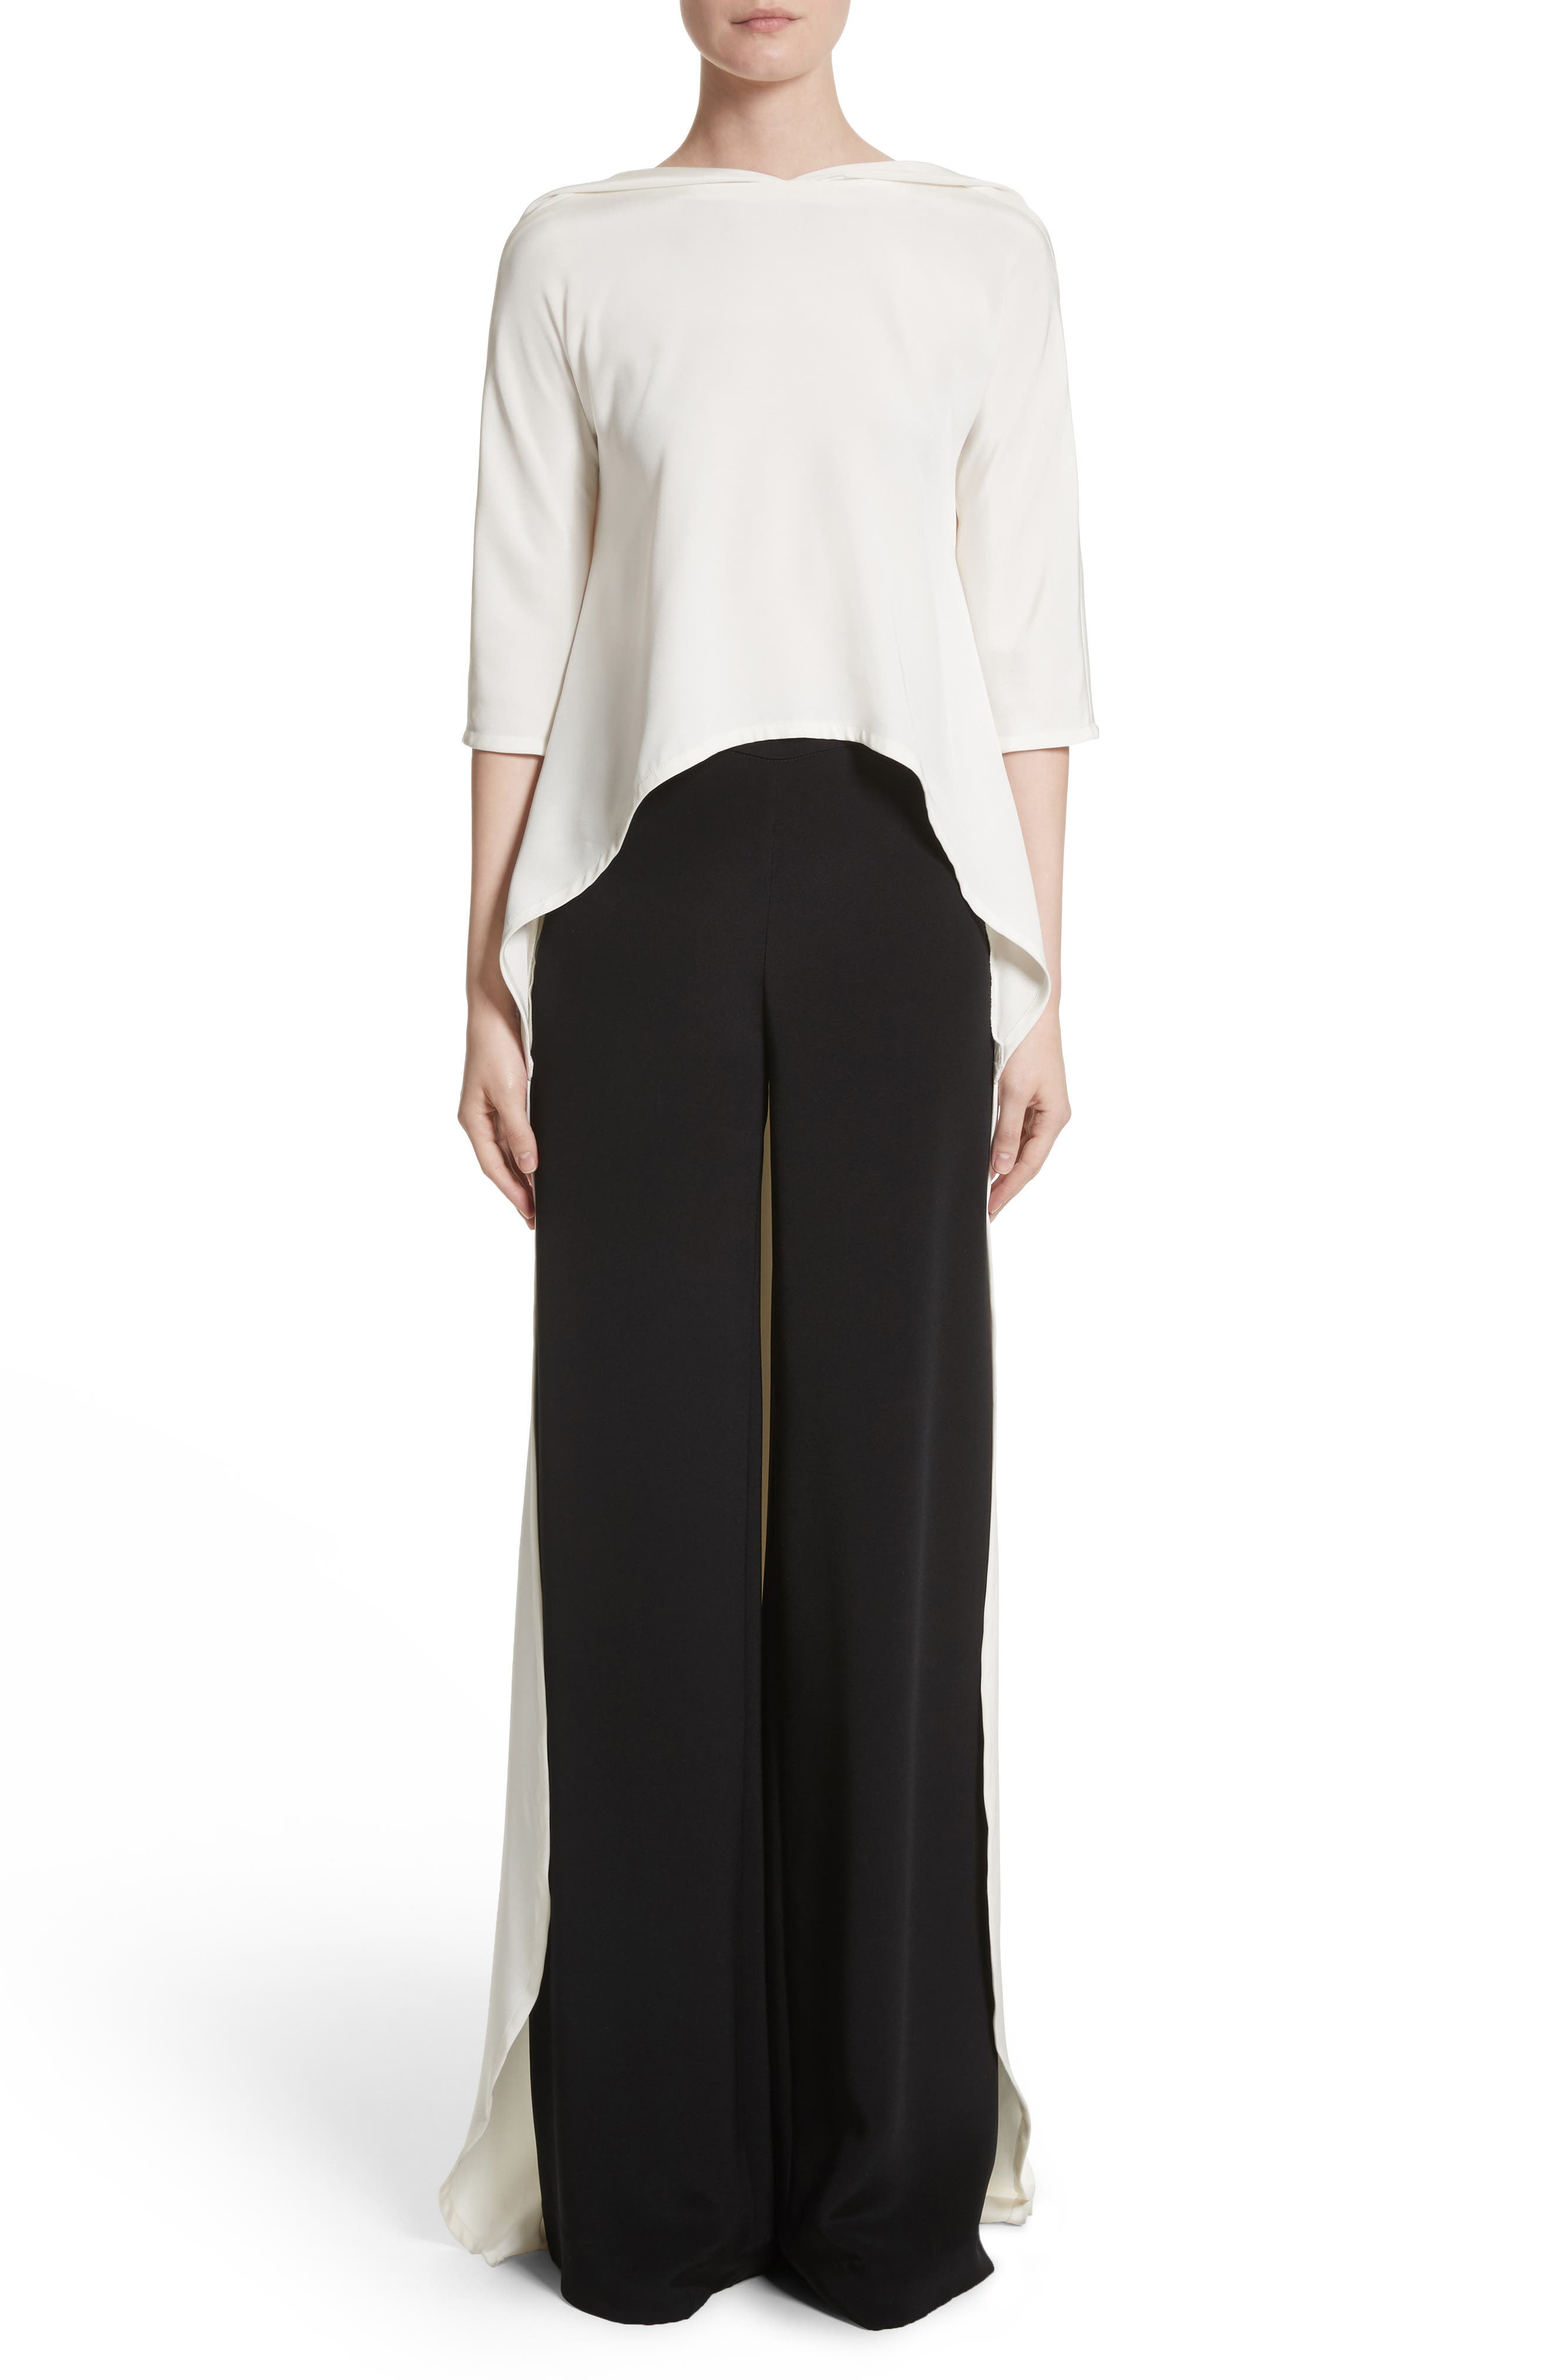 Alternate Image 1 Selected - Carolina Herrera Cape Top